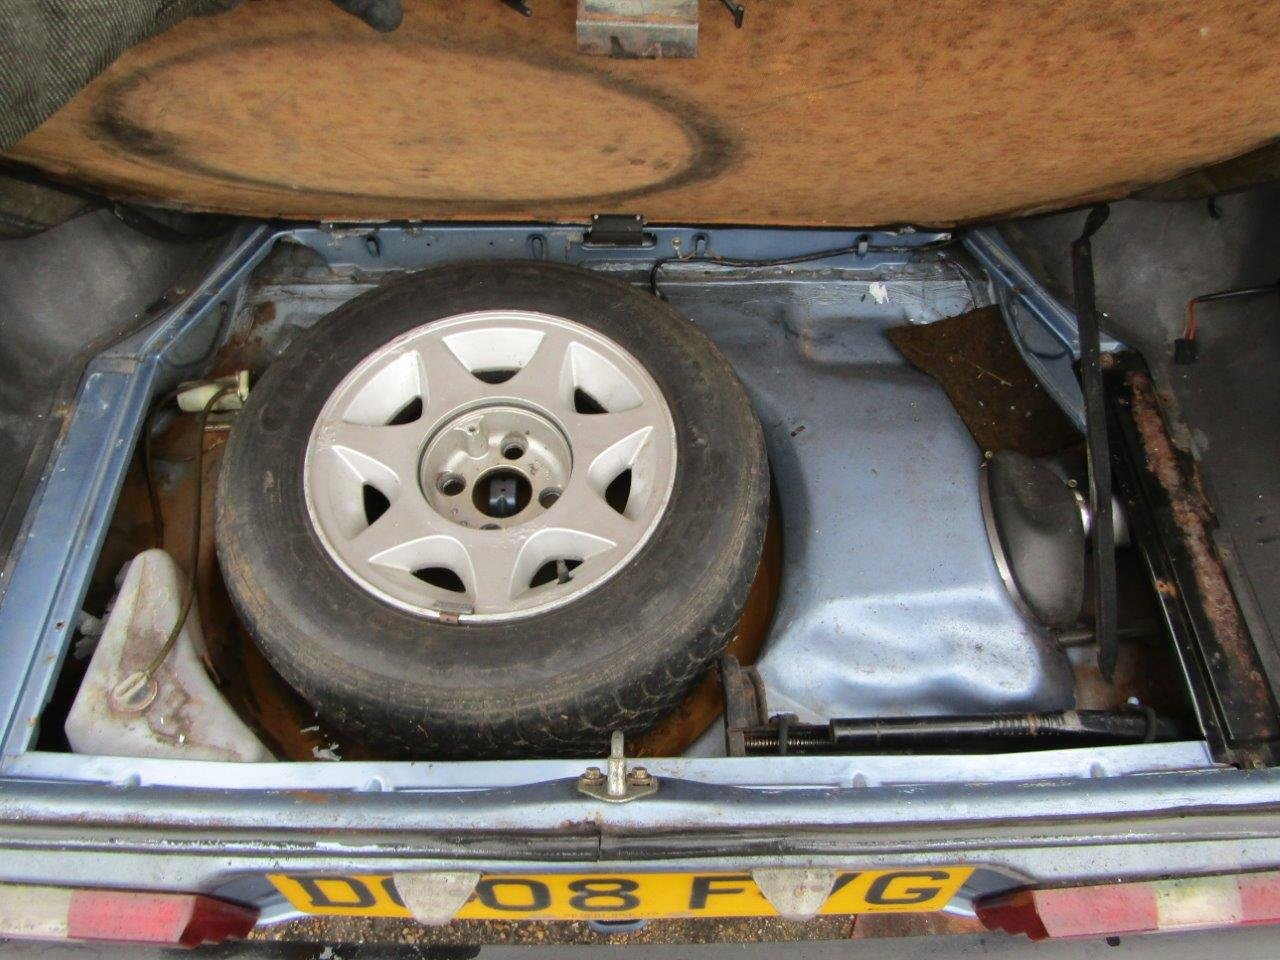 1986 Ford Capri 1.6 Laser at ACA 27th and 28th February For Sale by Auction (picture 10 of 11)